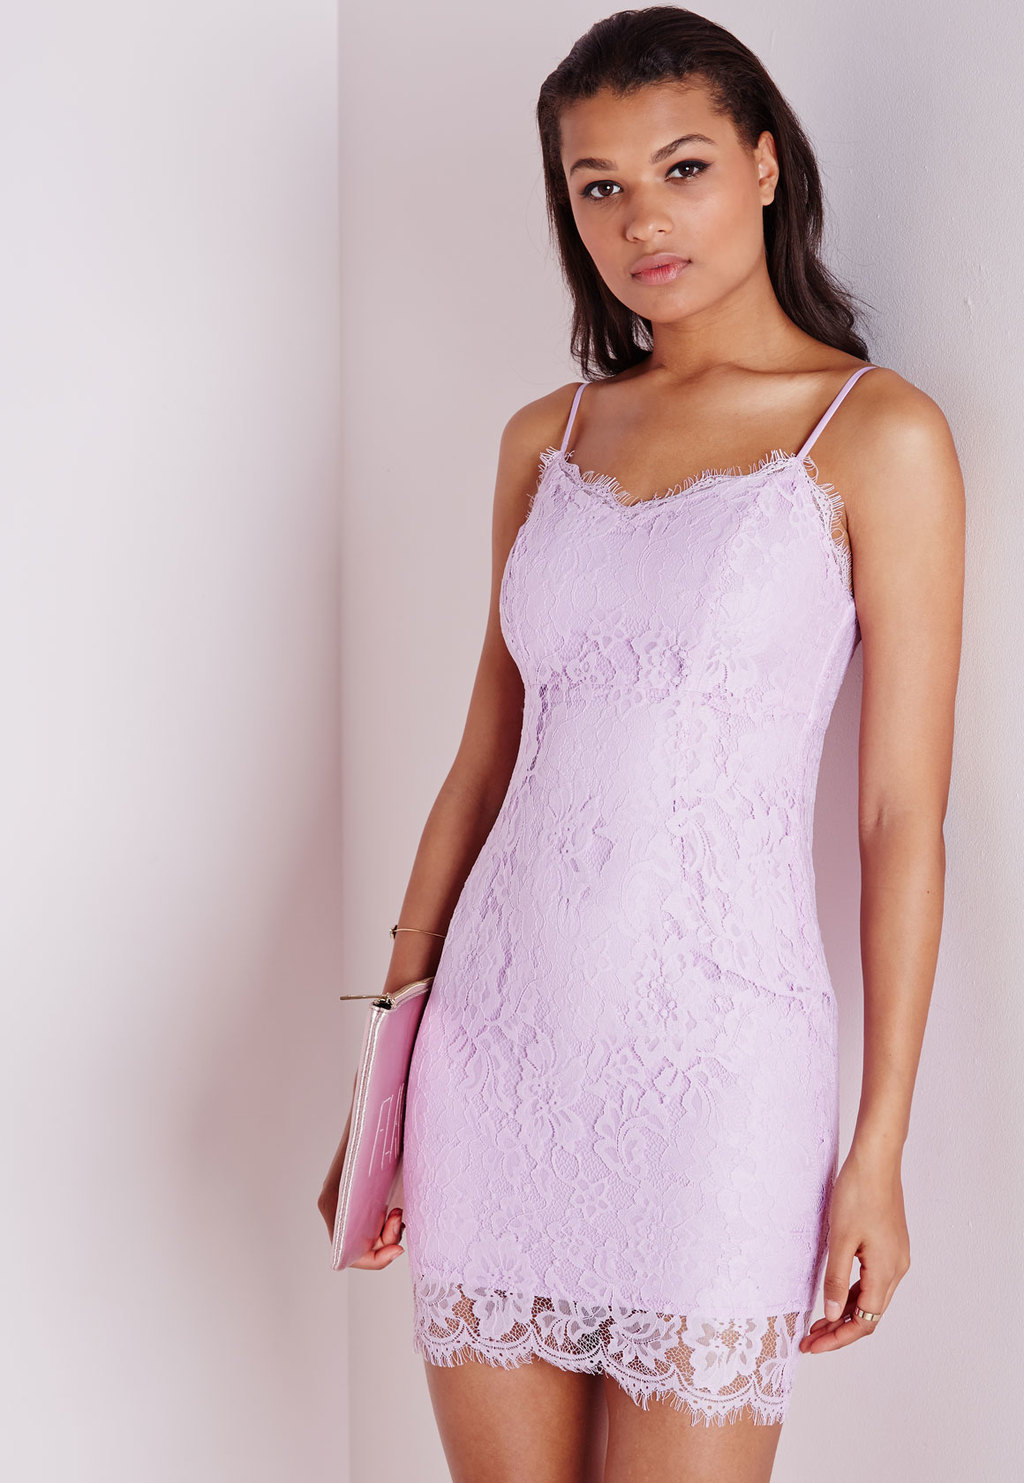 Lace Strappy Bodycon Dress Lilac, Mauve - length: mid thigh; neckline: low v-neck; sleeve style: spaghetti straps; fit: tight; style: bodycon; predominant colour: lilac; occasions: evening, occasion; fibres: polyester/polyamide - stretch; sleeve length: sleeveless; texture group: lace; pattern type: fabric; pattern: patterned/print; embellishment: lace; season: s/s 2015; wardrobe: event